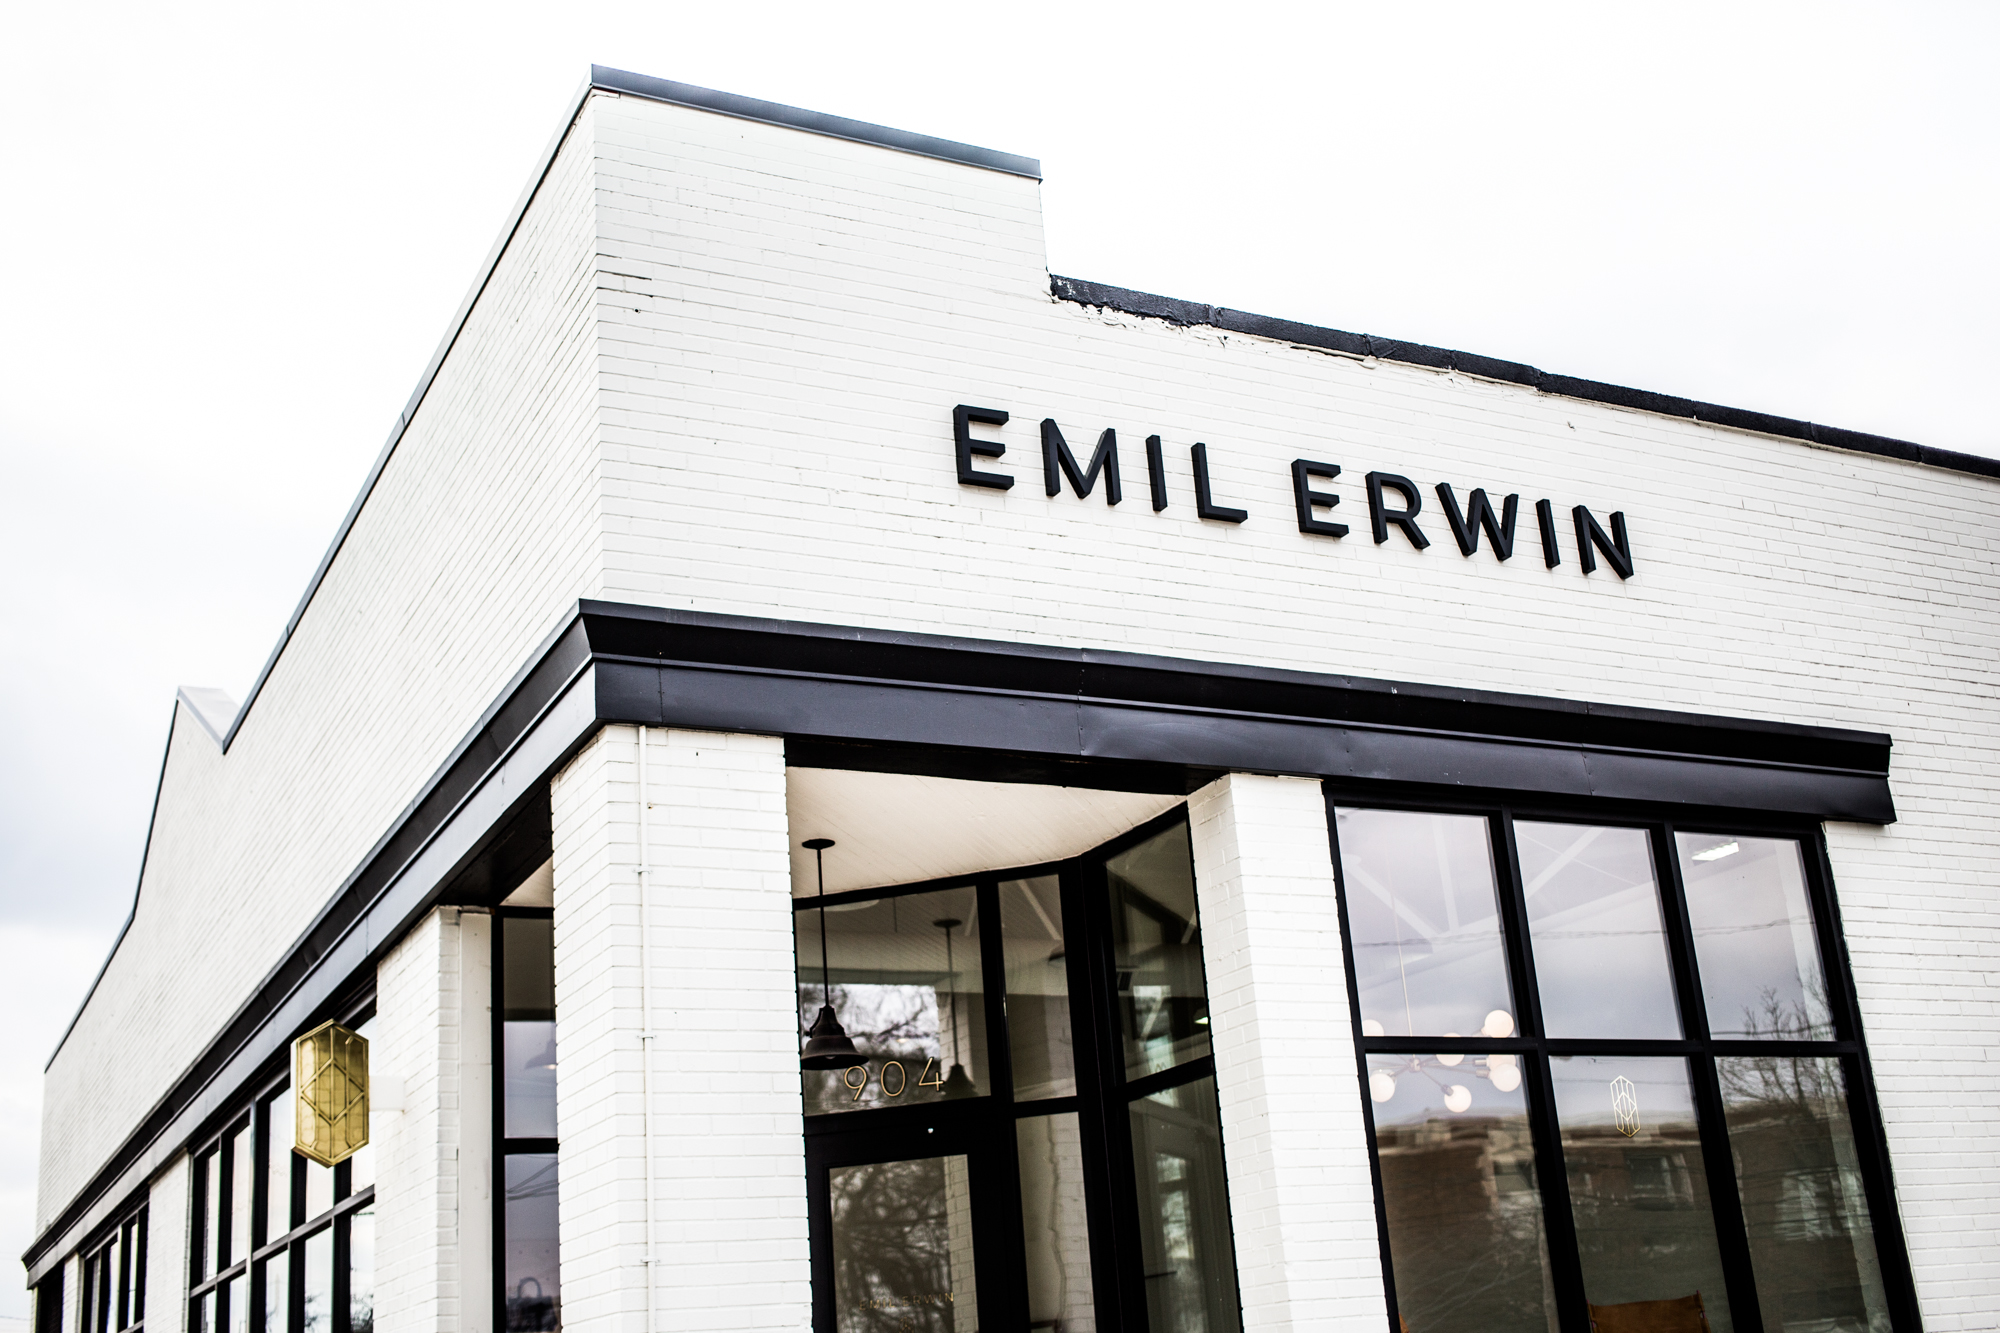 the storefront of emil erwin in nashville